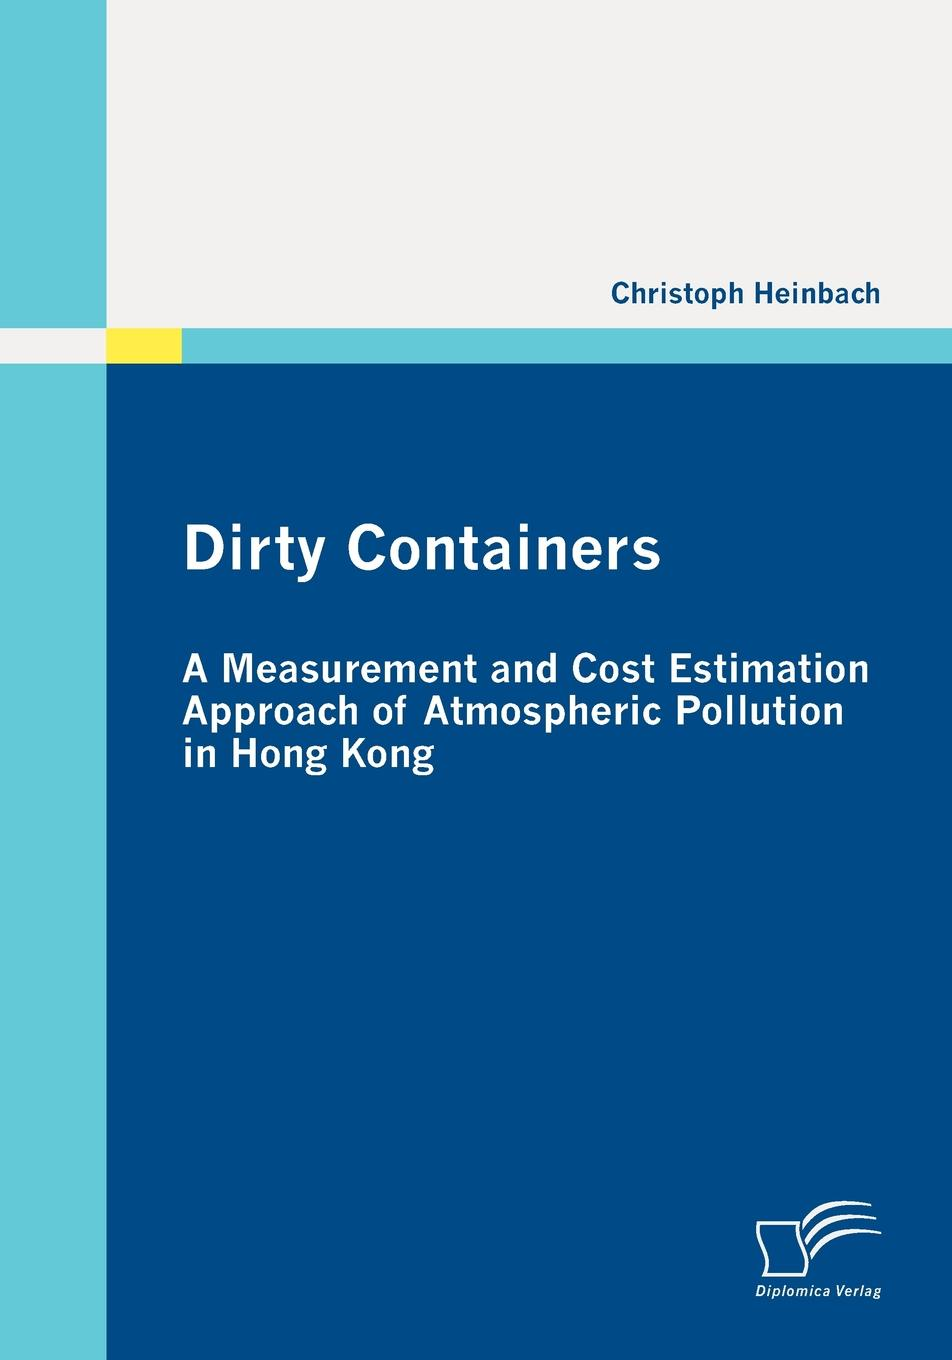 Christoph Heinbach Dirty Containers. A Measurement and Cost Estimation Approach of Atmospheric Pollution in Hong Kong guanglei hong causality in a social world moderation mediation and spill over